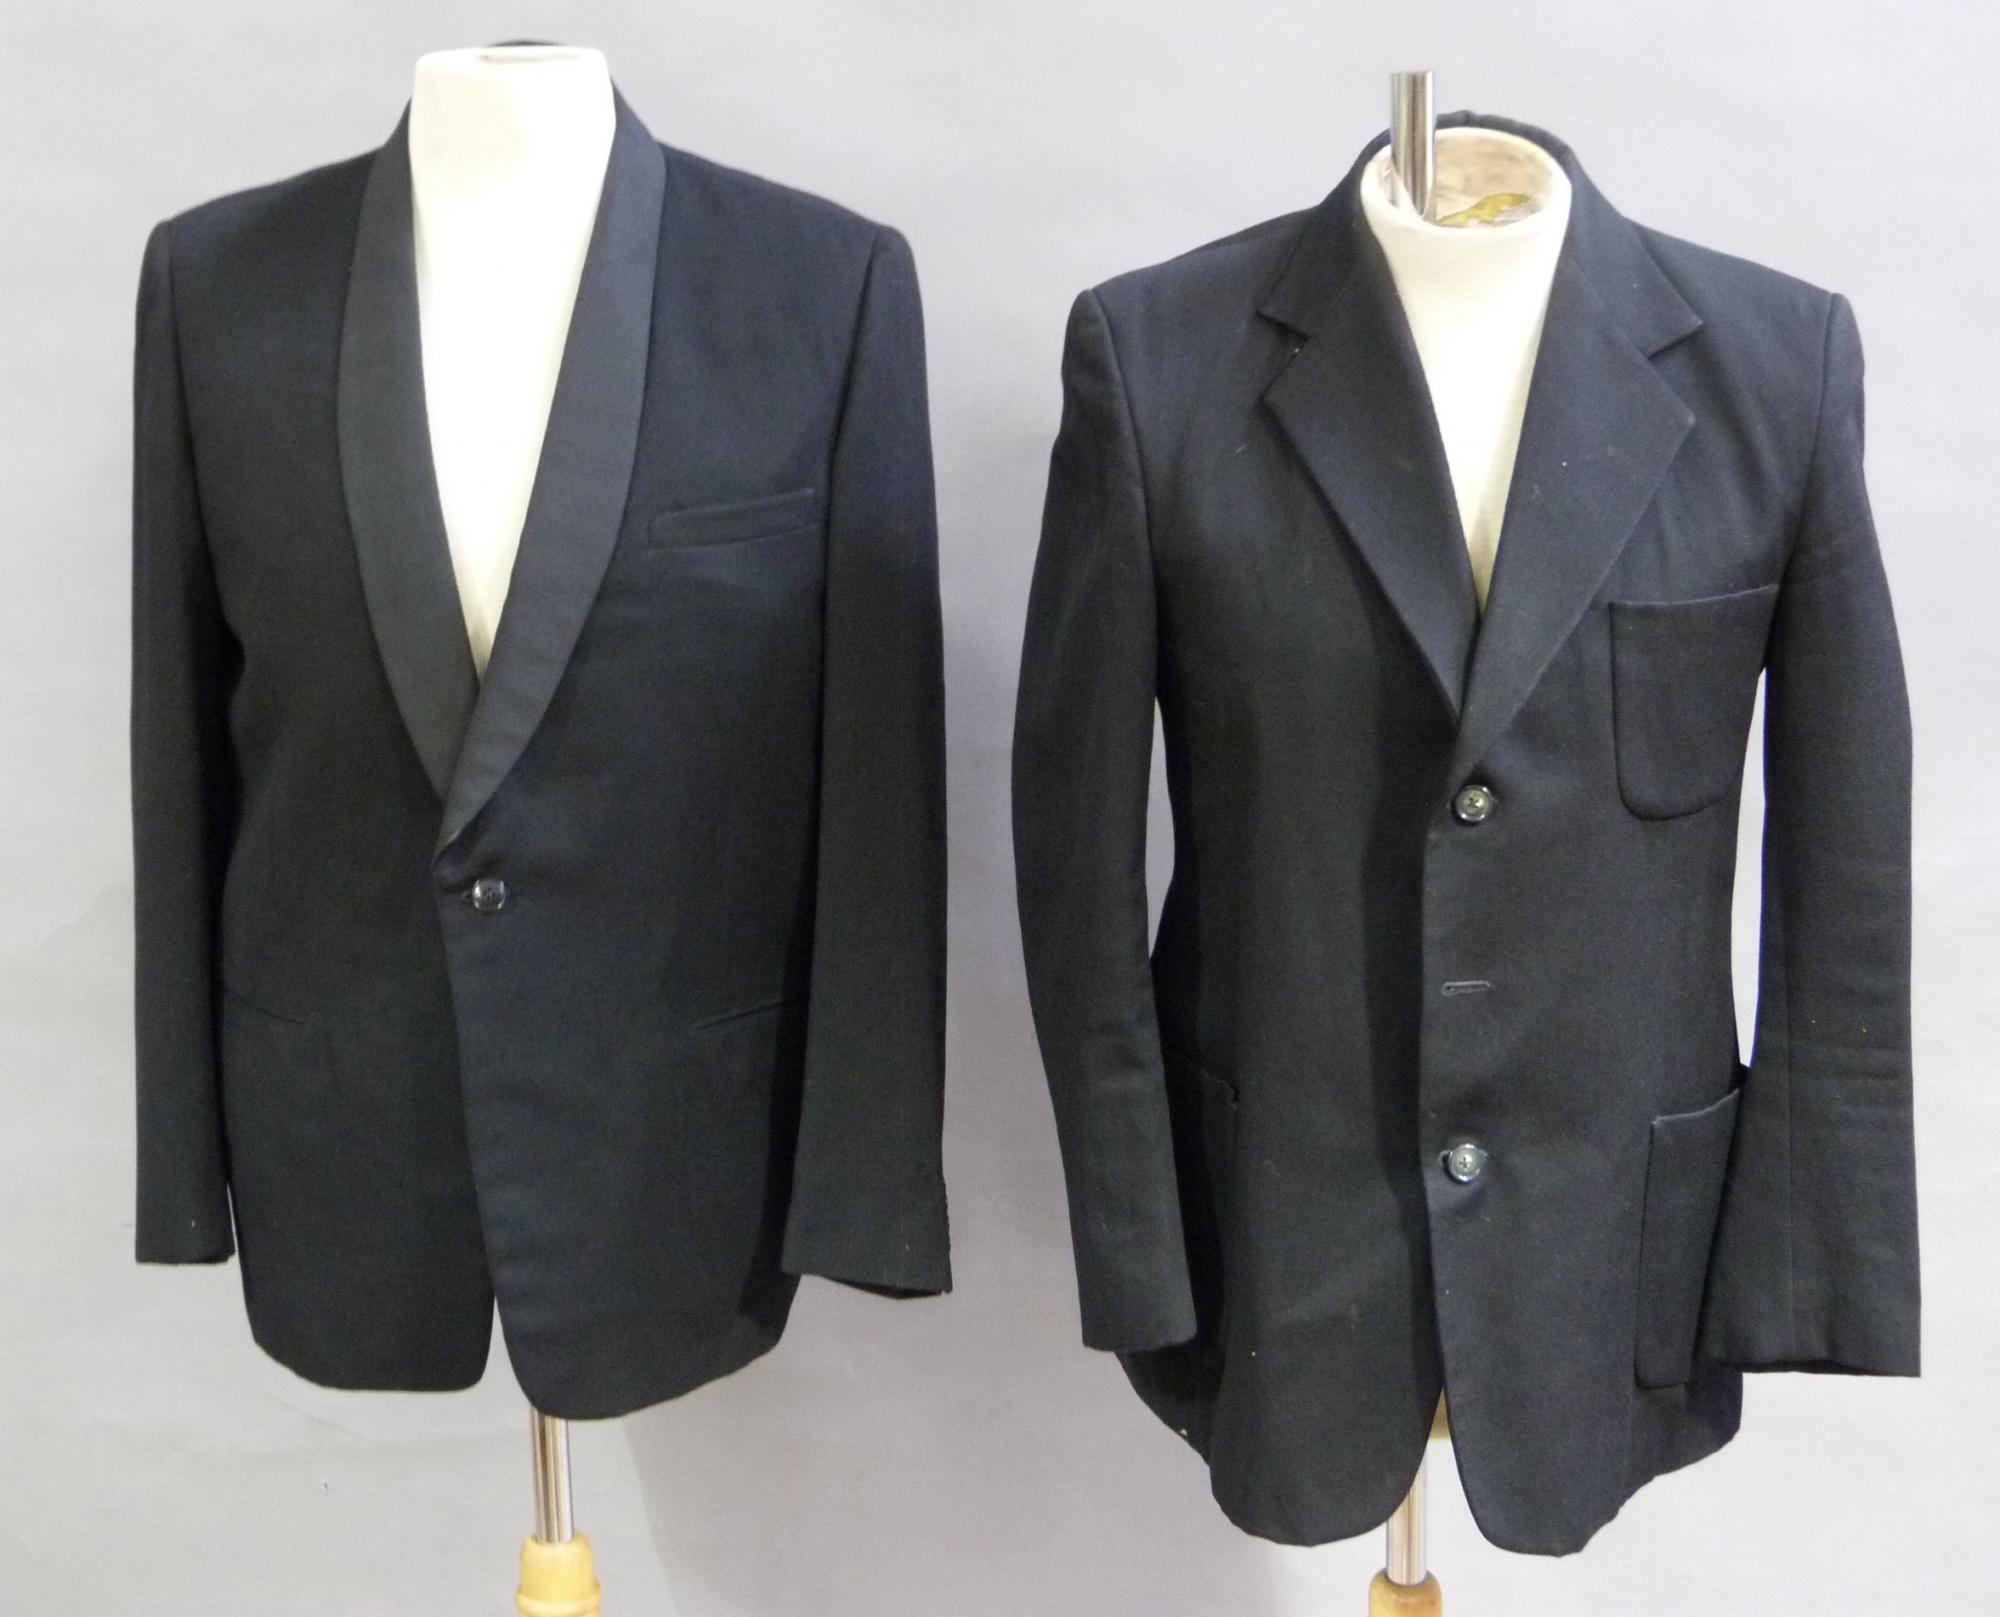 Lot 94 An Austin Reed Dinner Jacket Together With A Black Wool Jac